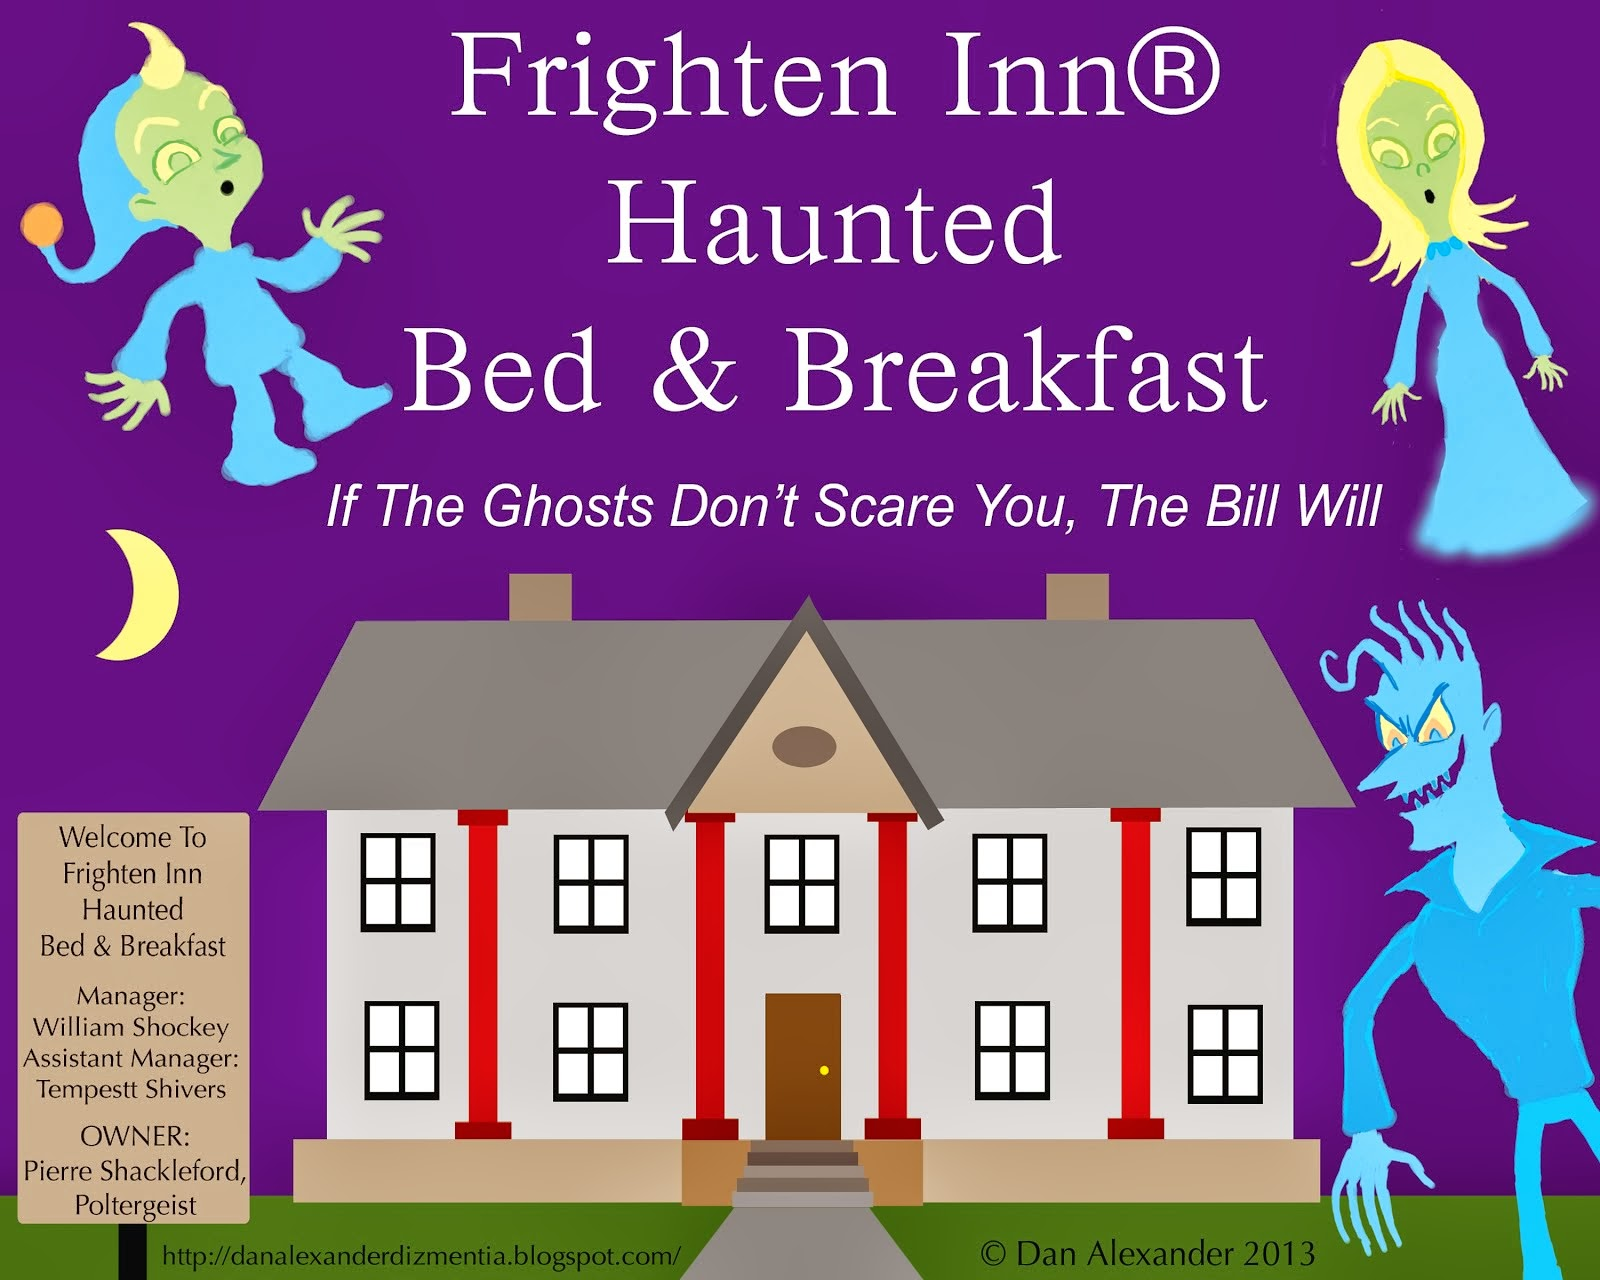 Frighten Inn Haunted Bed & Breakfast Is A Proud Sponsor of Dan Alexander Dizmentia